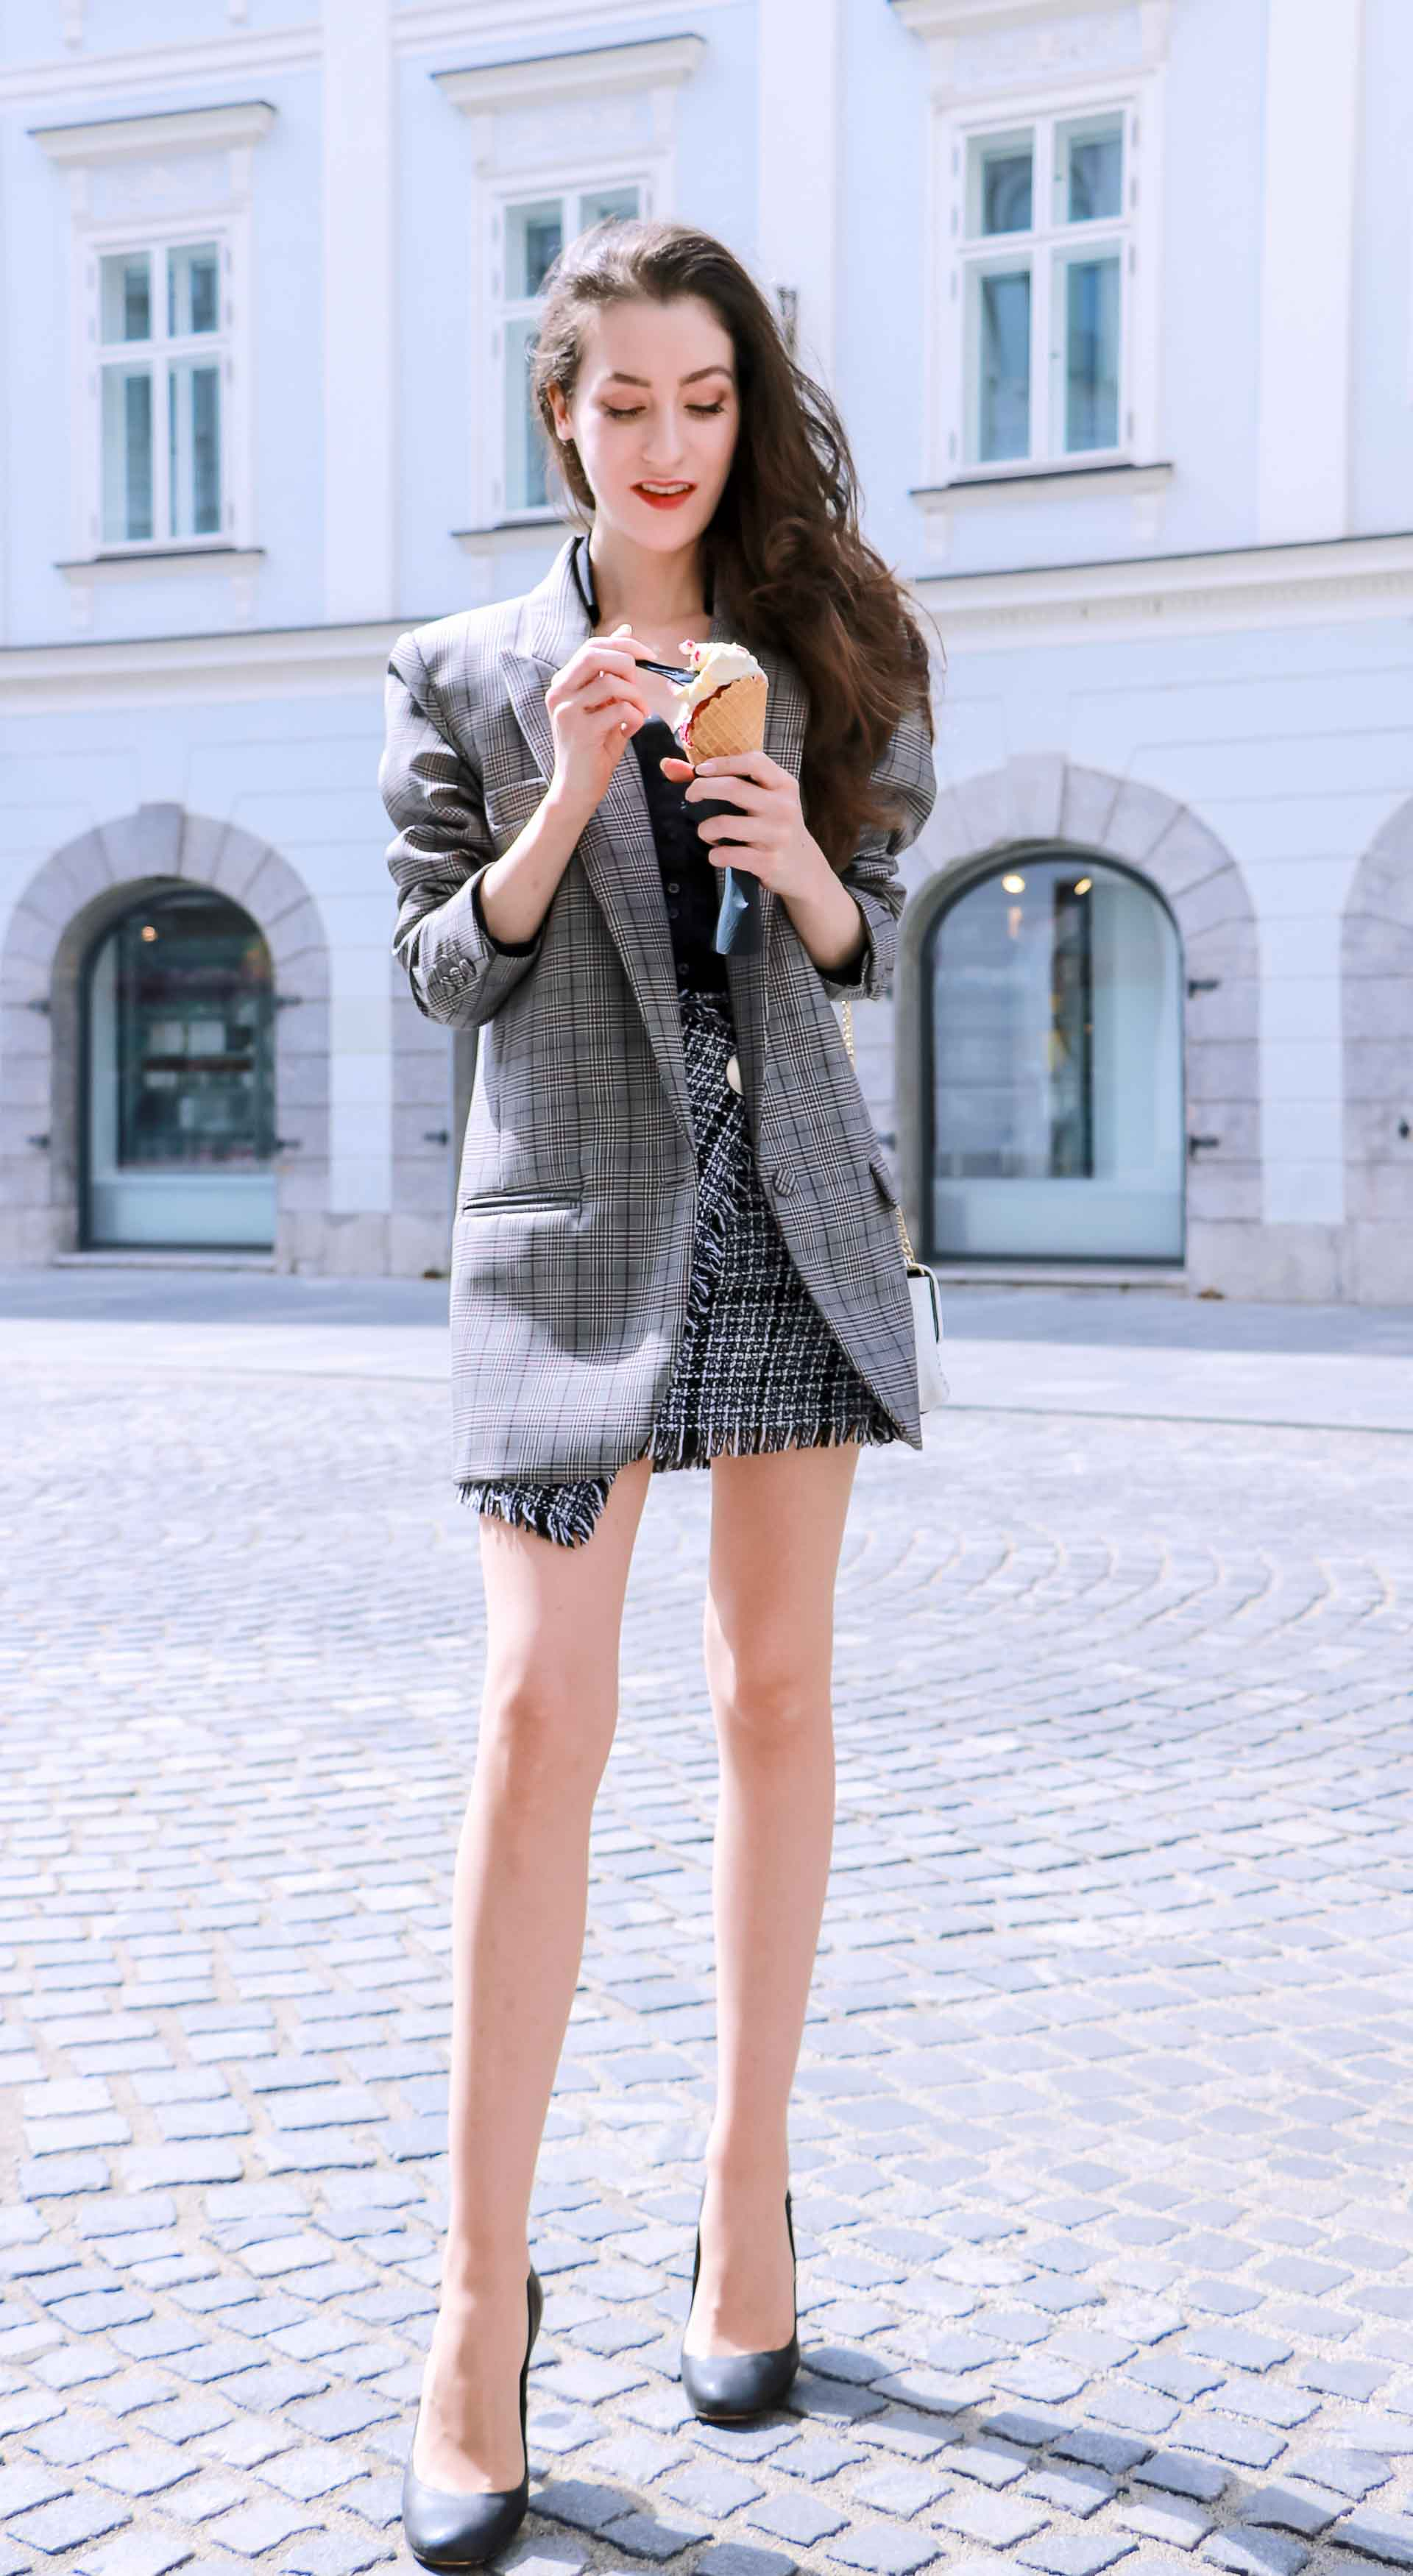 Fashion Blogger Veronika Lipar of Brunette from Wall Street wearing Erika Cavallini oversized boyfriend plaid blazer with short tweed black and white mini skirt from streets, black pumps and white chain strap shoulder bag while eating ice cream in sugar cone